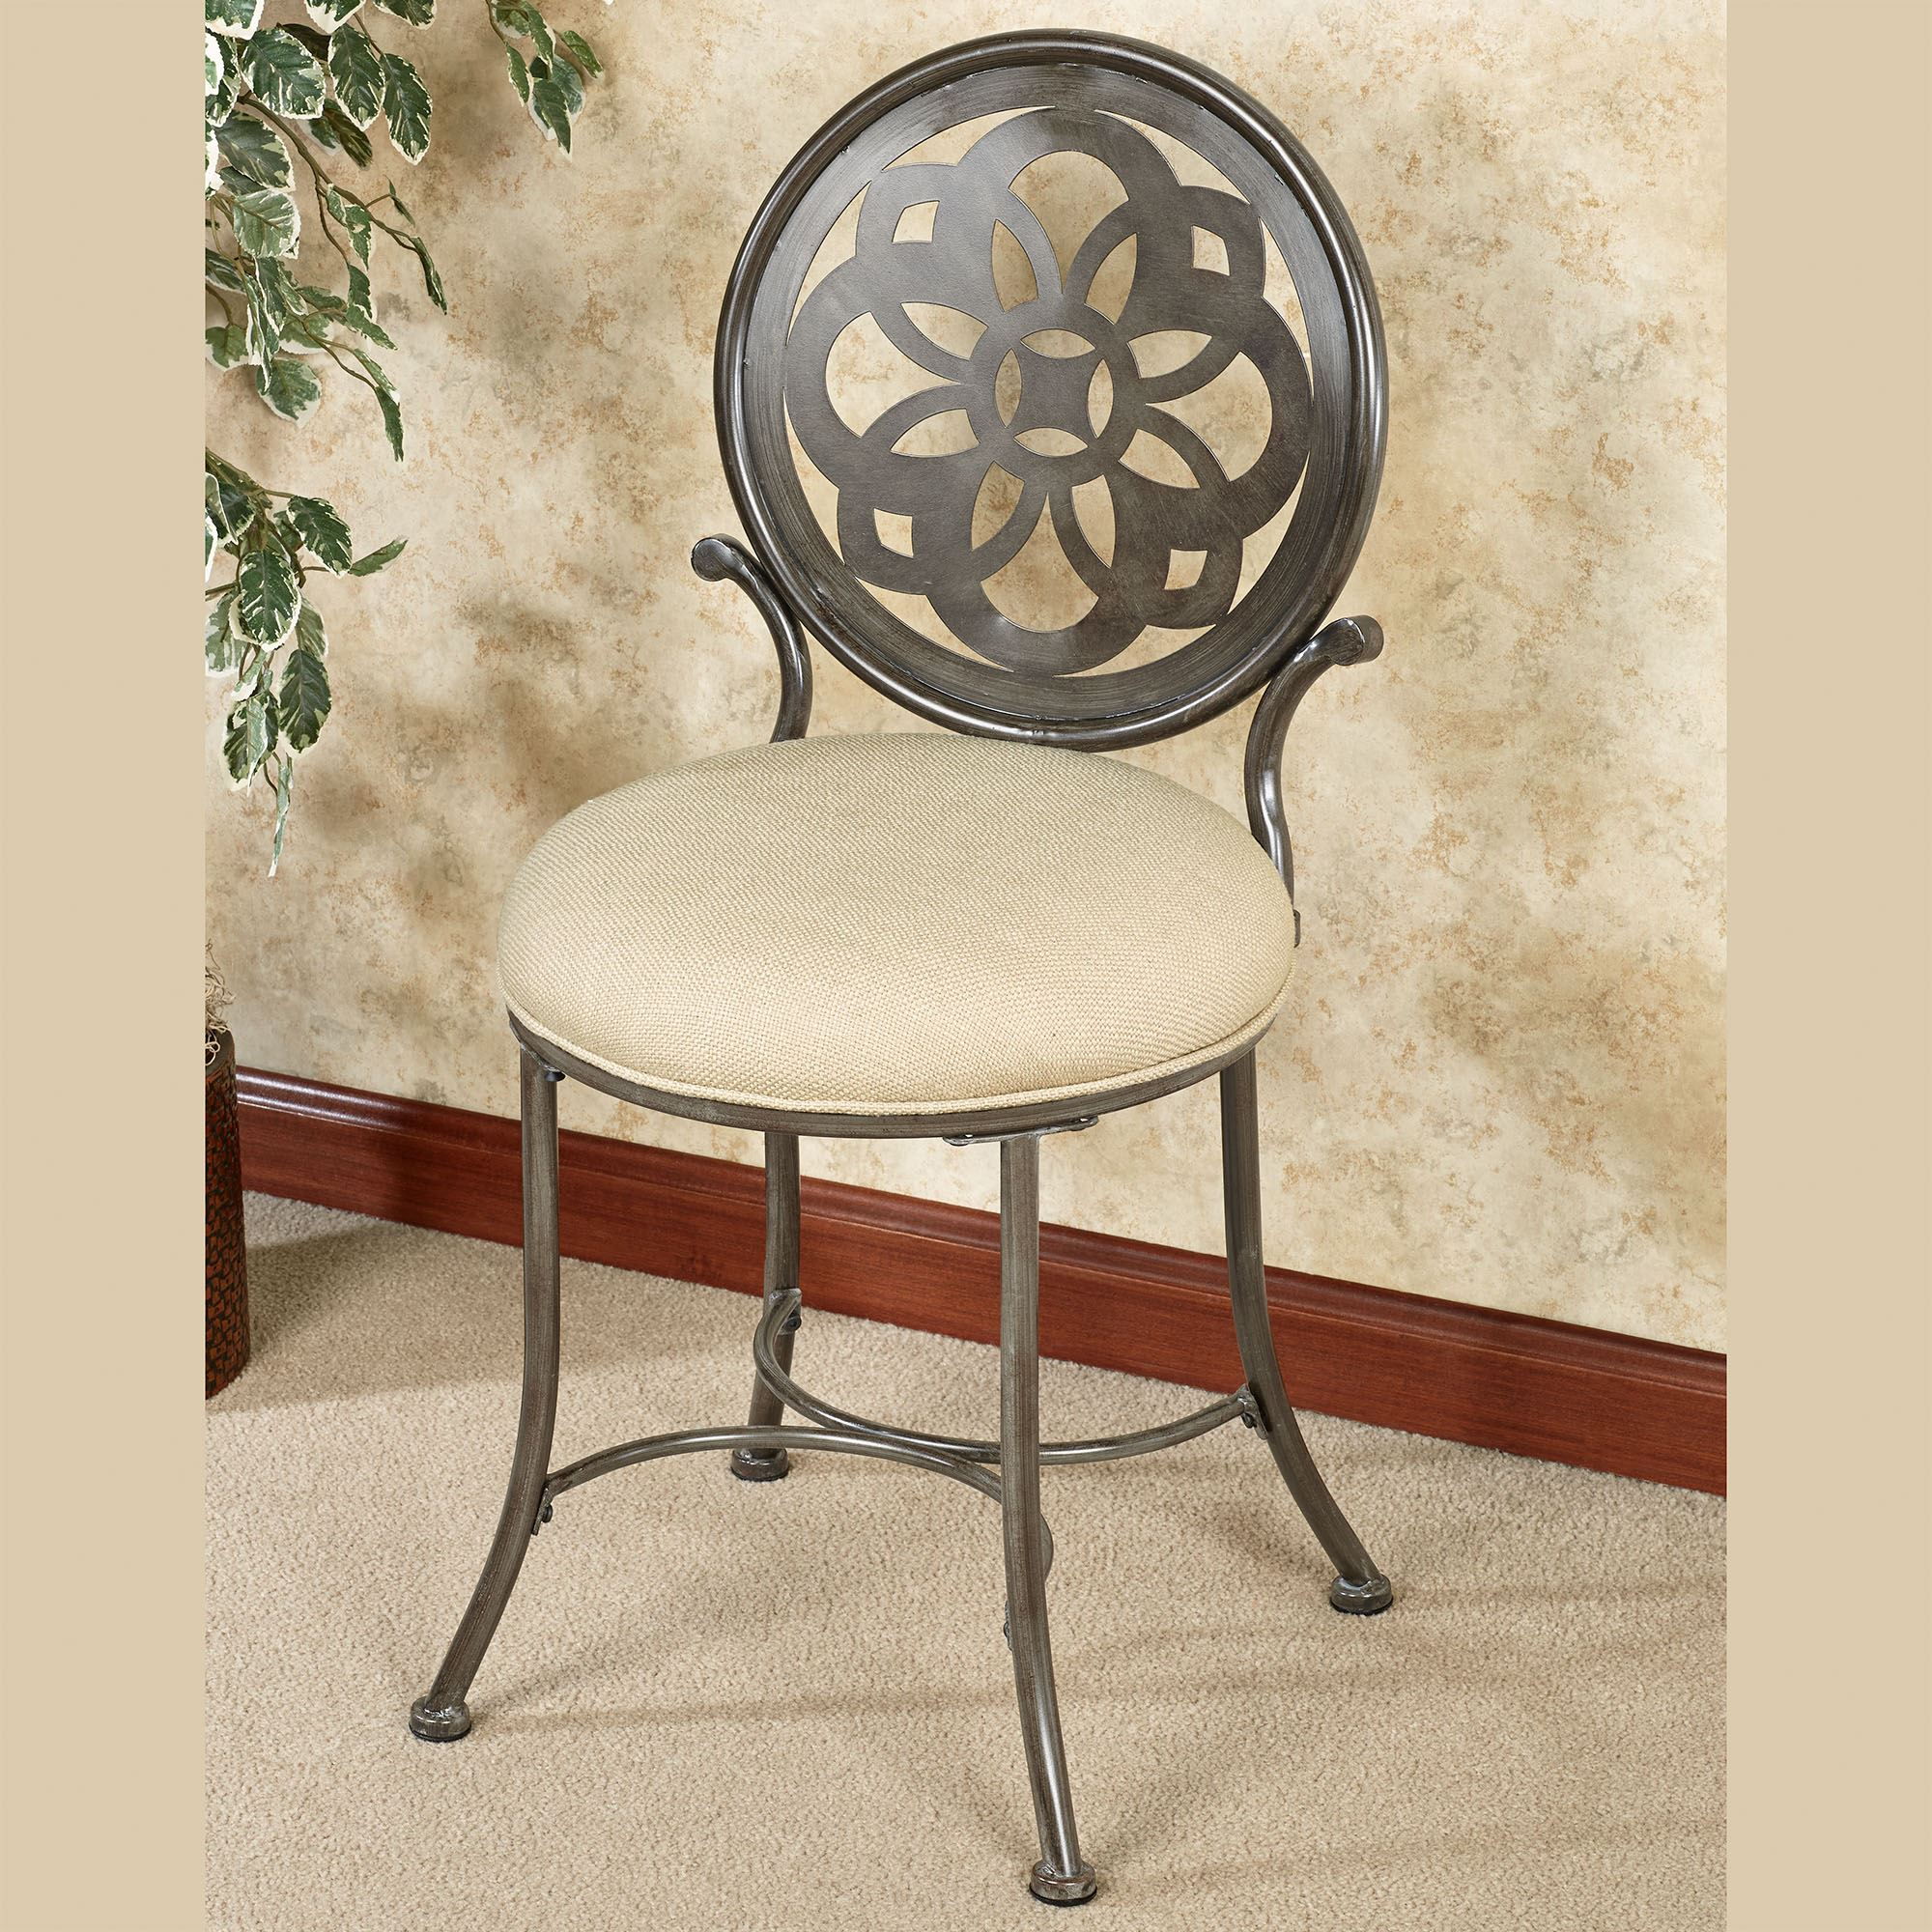 Upholstered Vanity Chair Marsala Upholstered Metal Vanity Chair